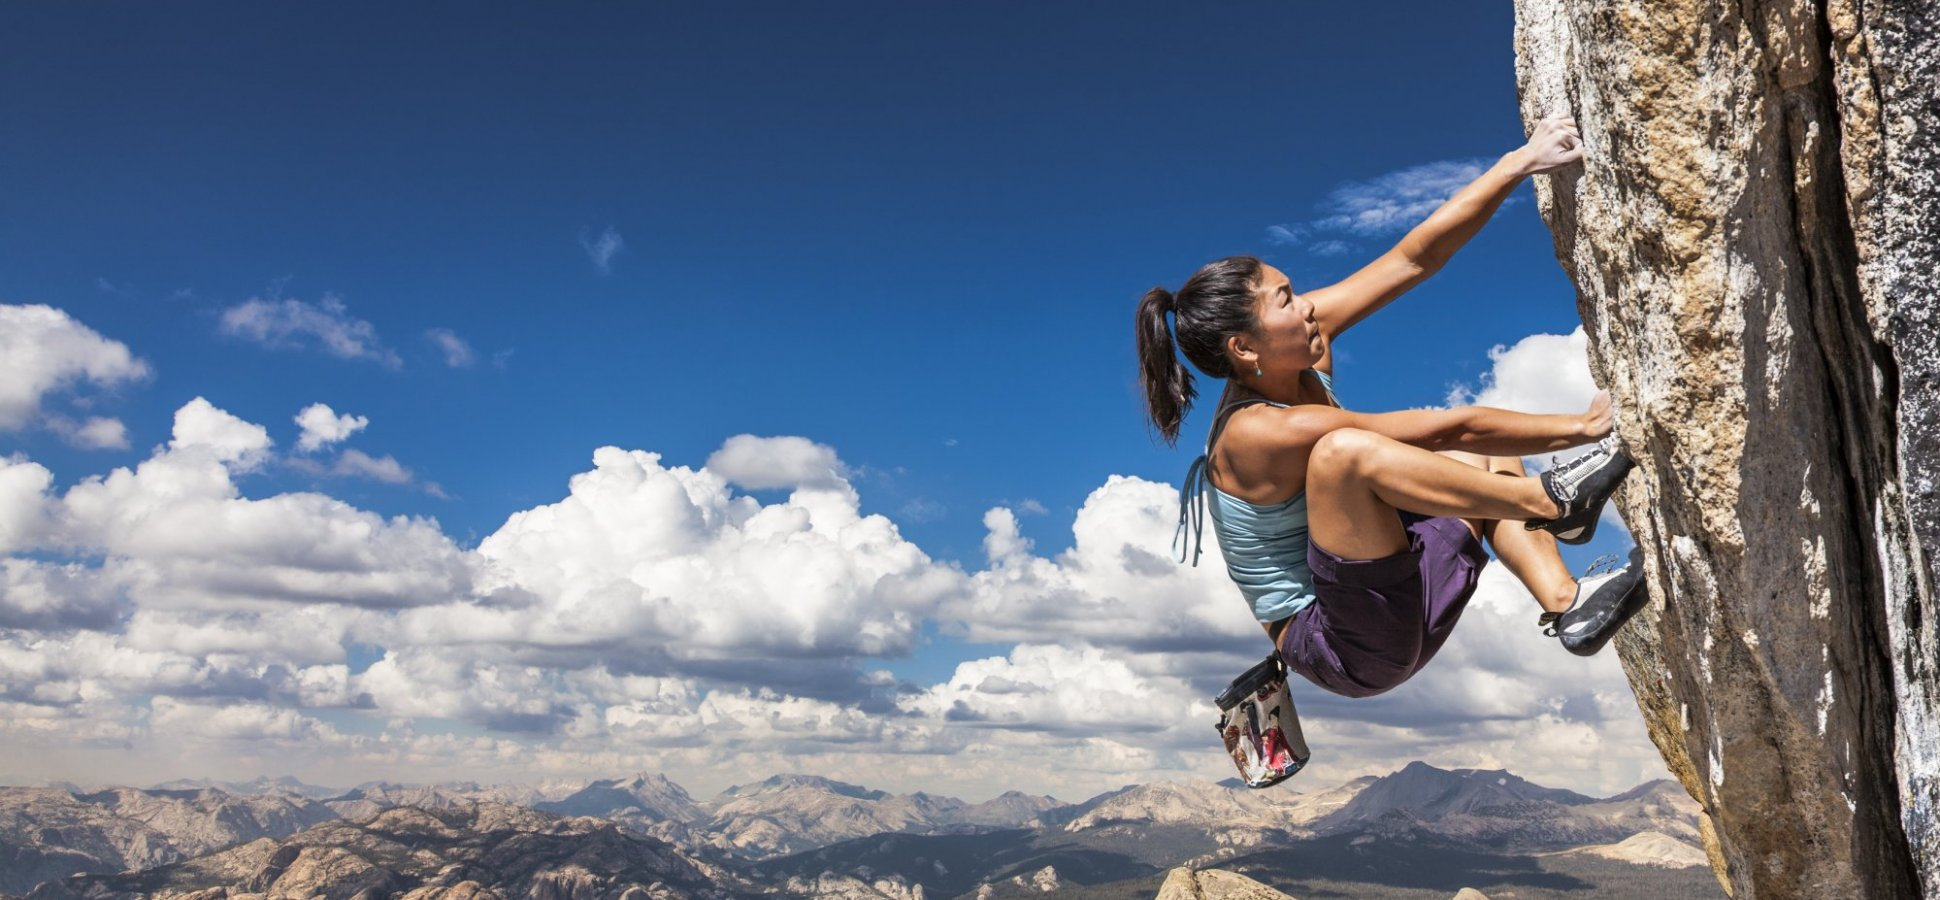 17 Quotes That Will Compel You to Strengthen Your Commitments